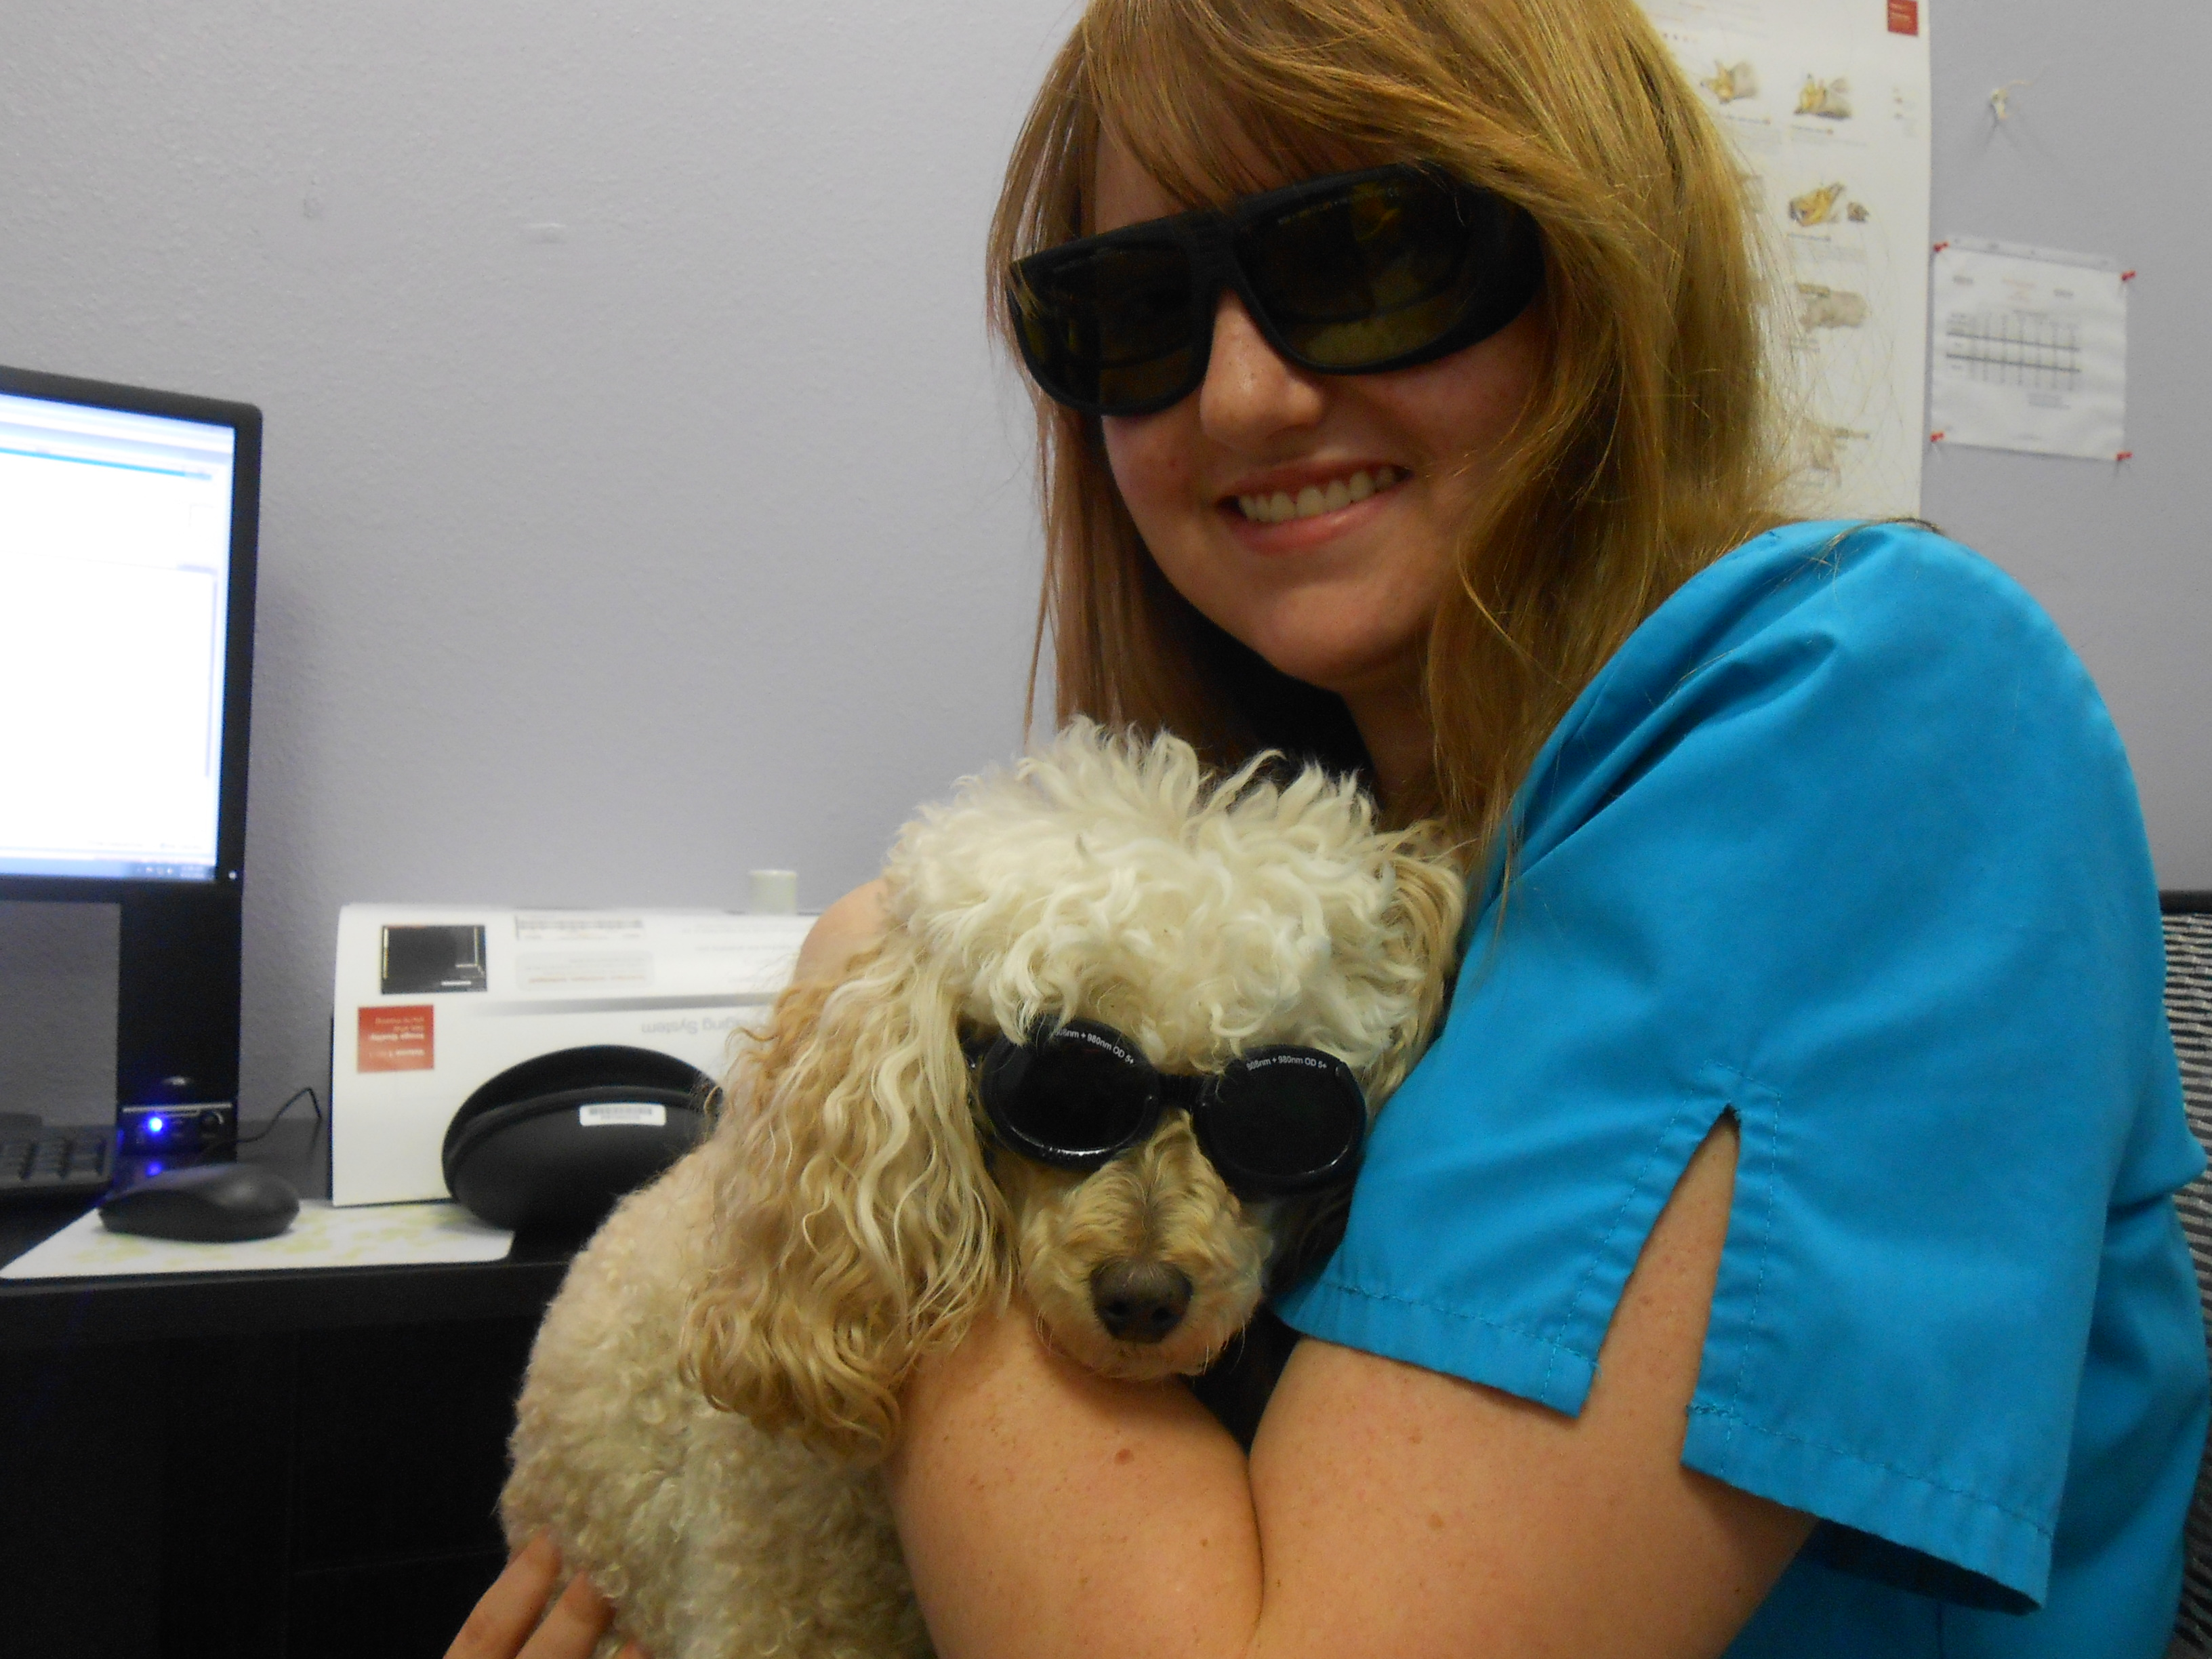 fort collins veterinarian offers innovative laser therapy